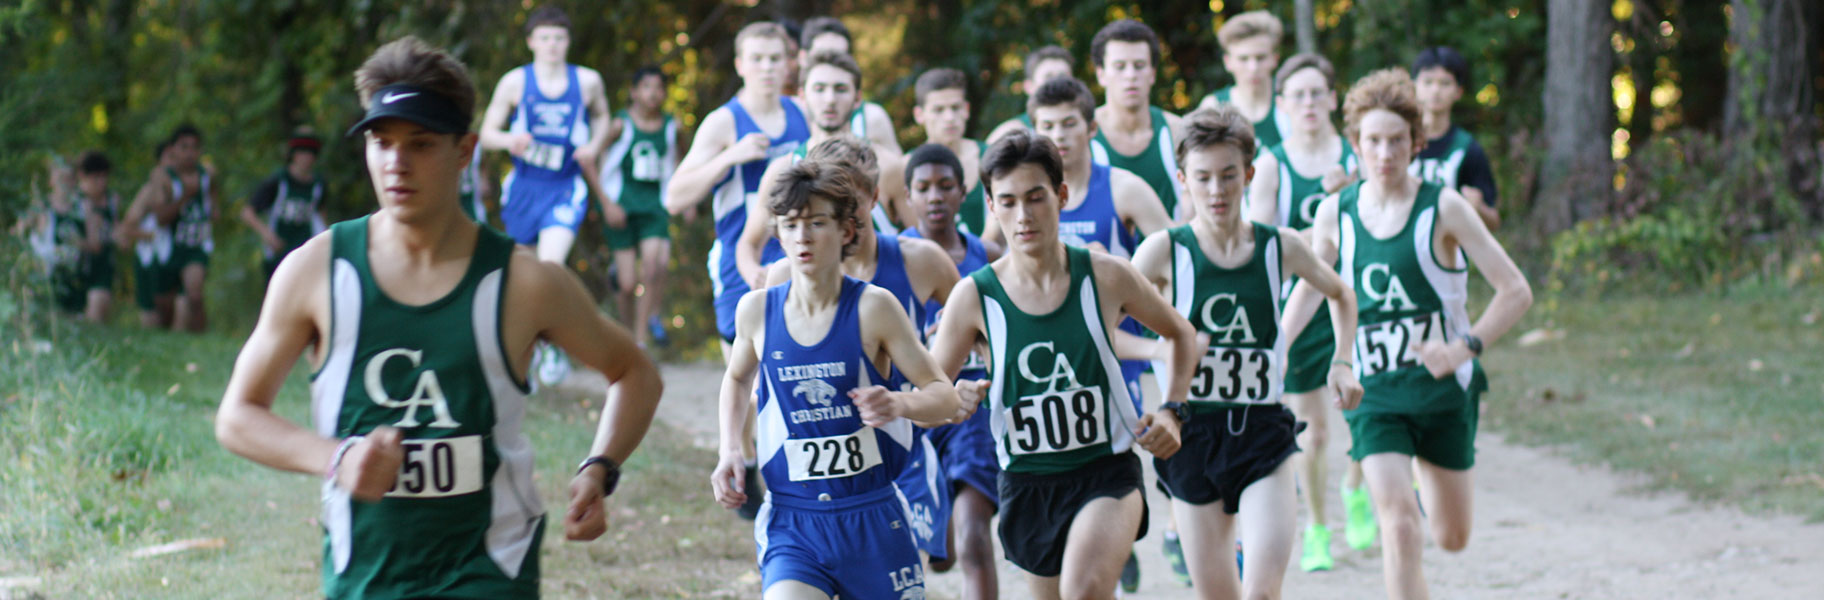 Boys Cross Country at Concord Academy